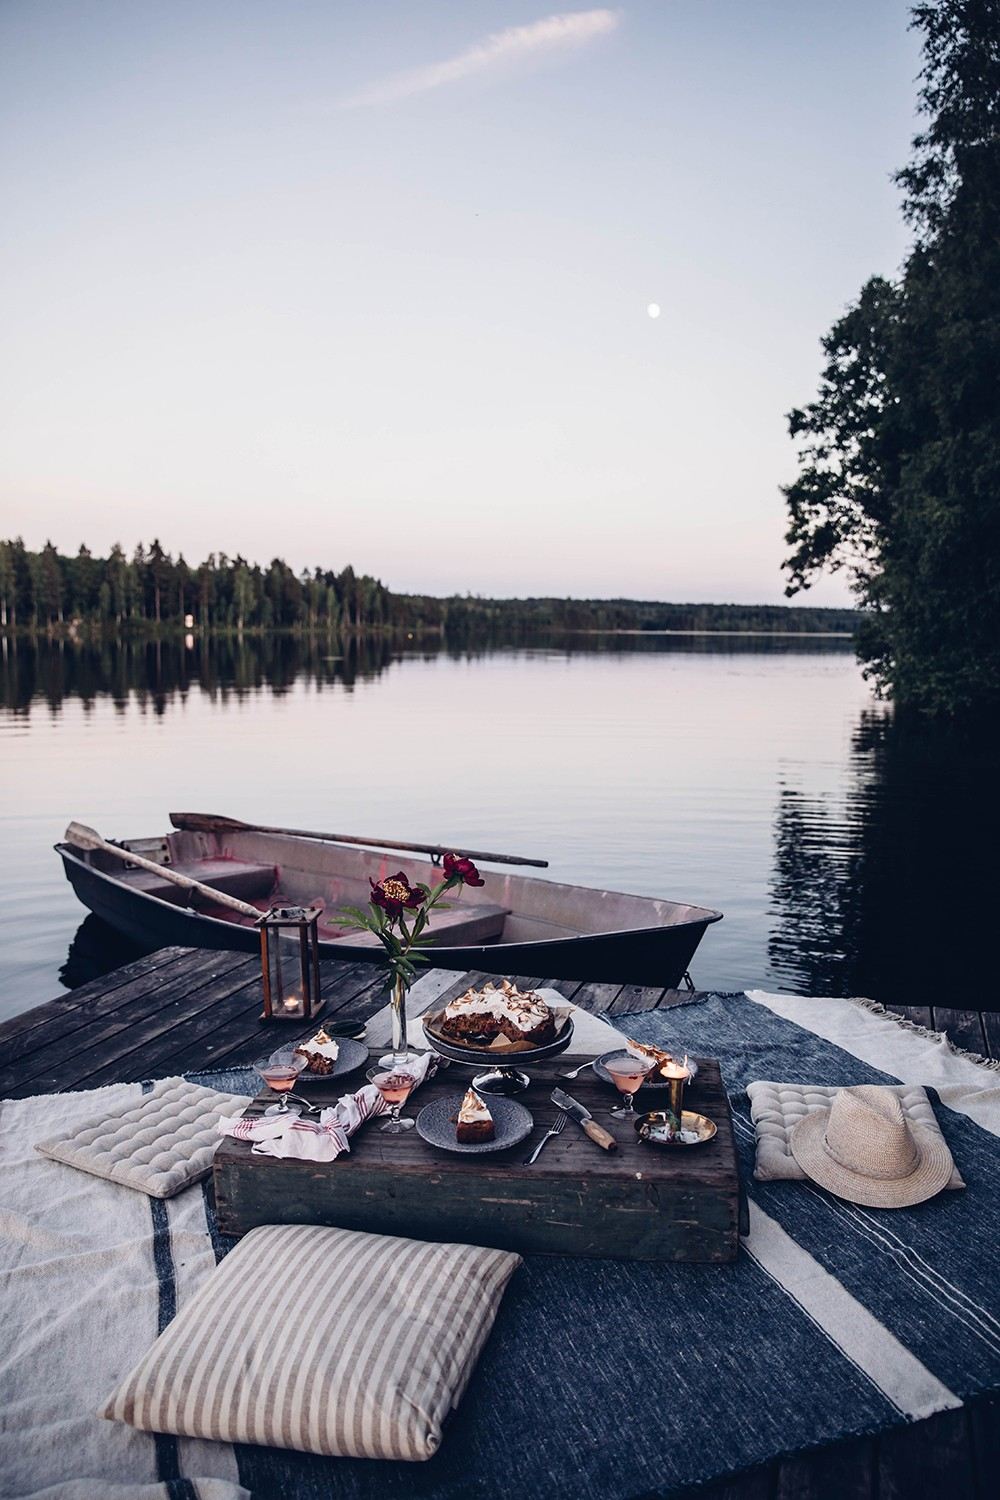 Moon Picnic in Sweden at the Lake – & a delicious Rhubarb-Lingonberry-Cake with Meringue